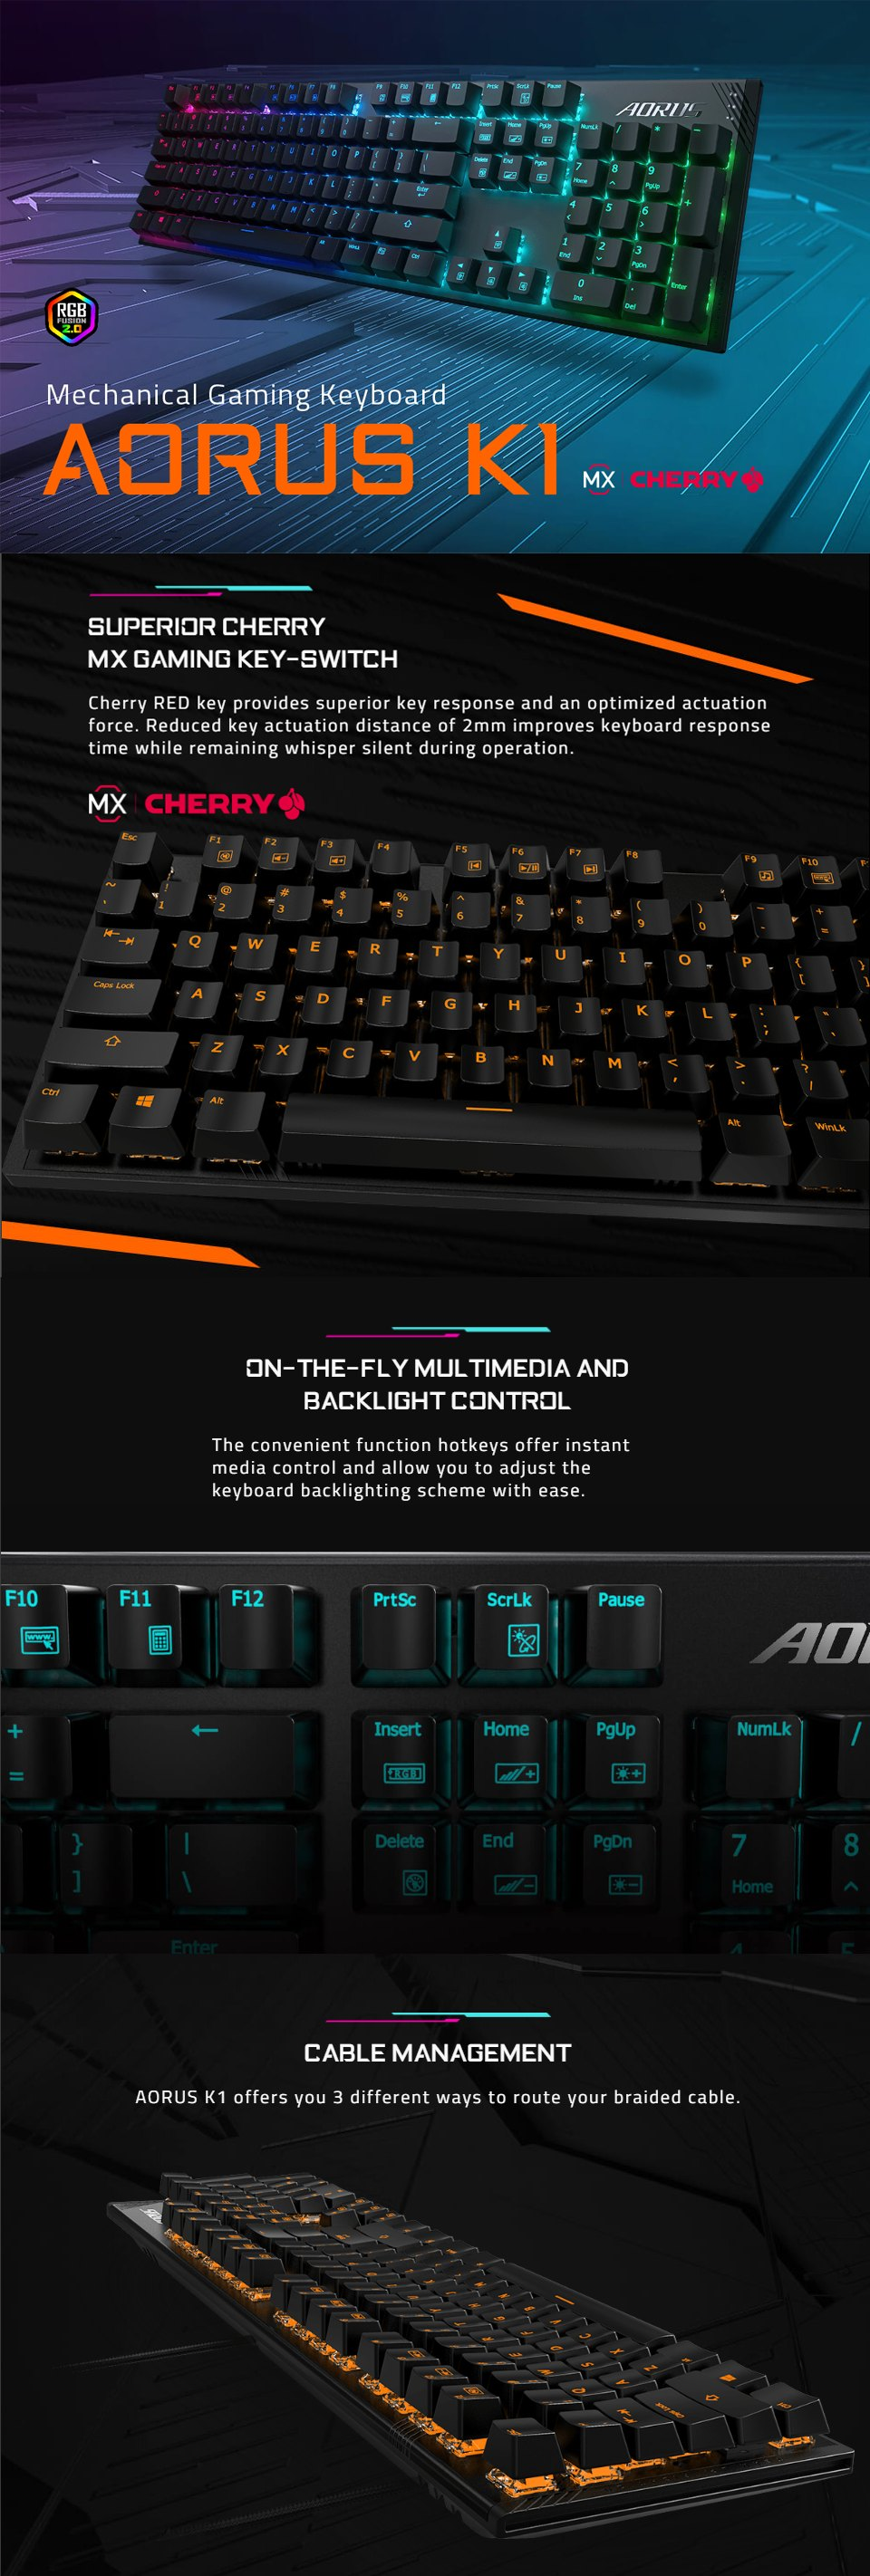 Gigabyte AORUS K1 RGB Mechanical Keyboard Red Switch features